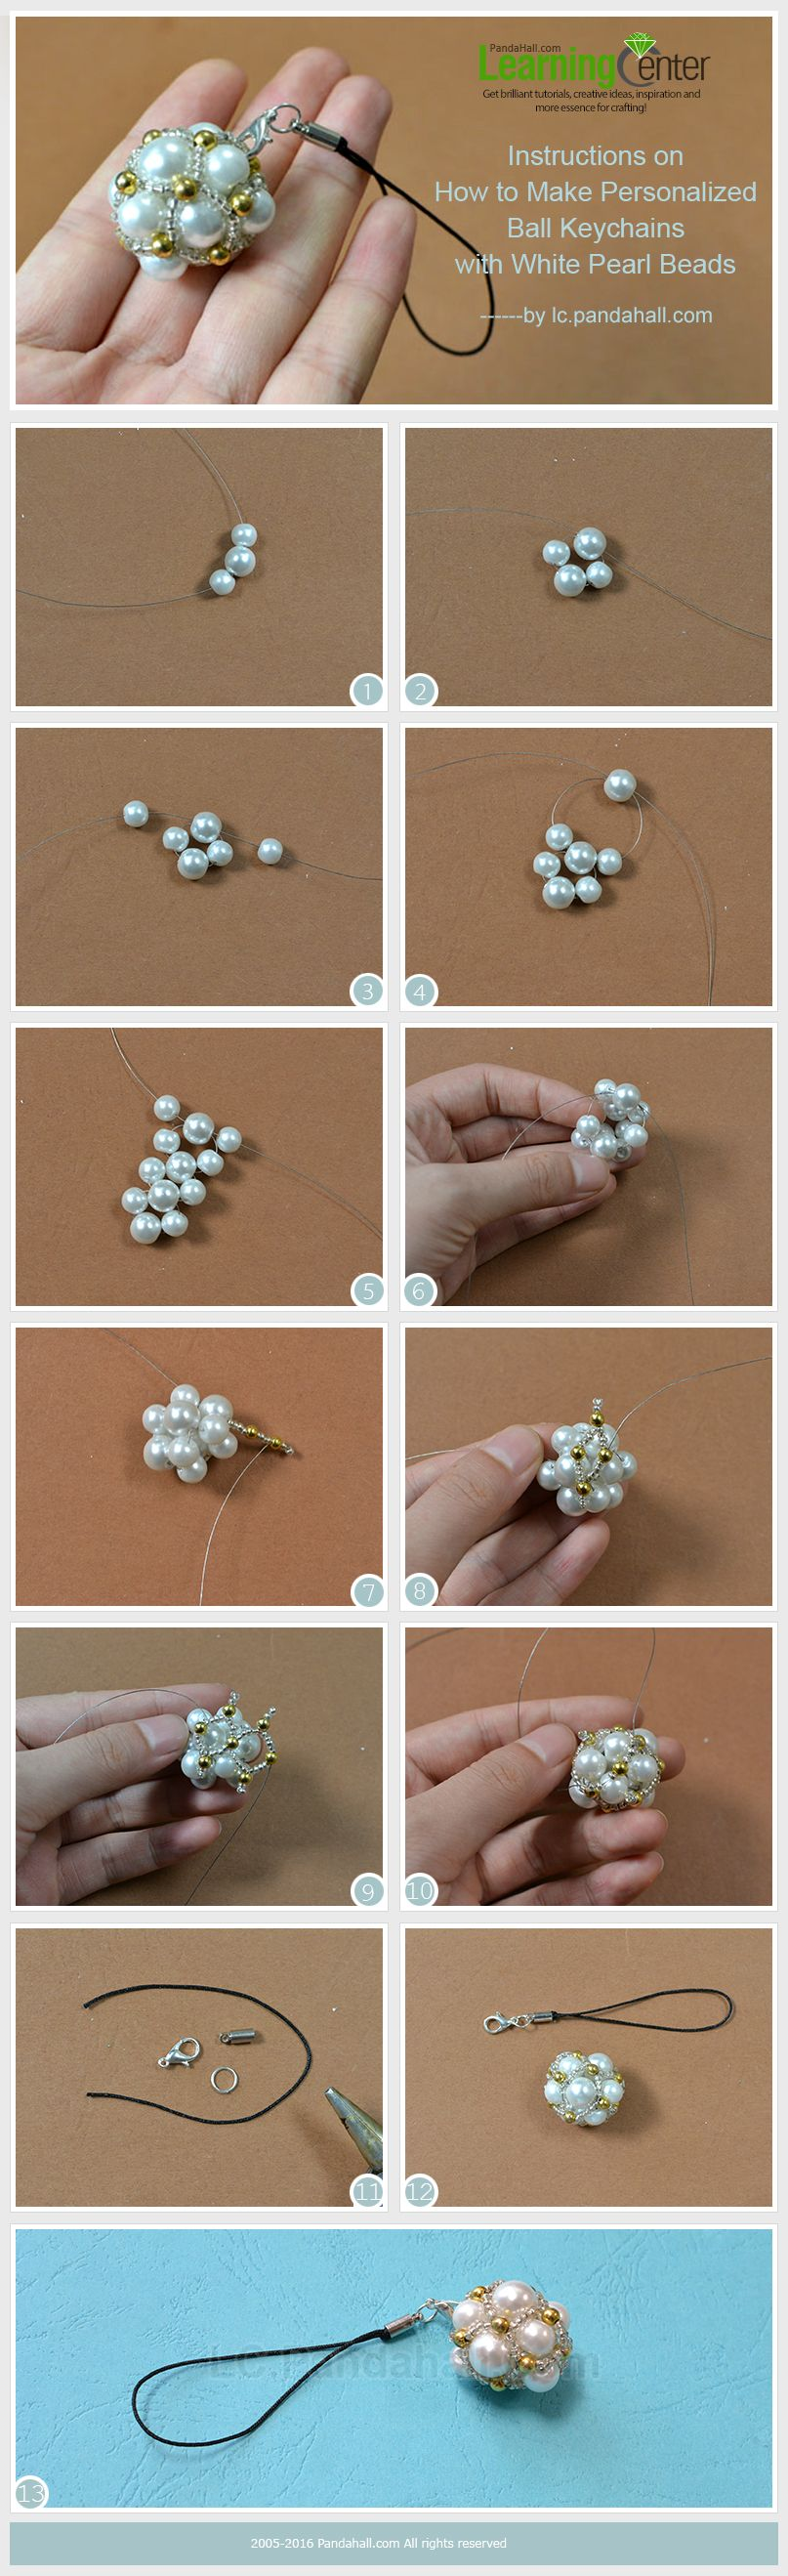 Beads instructions - Instructions On How To Make Personalized Ball Keychains With White Pearl Beads Tutorial Keychain